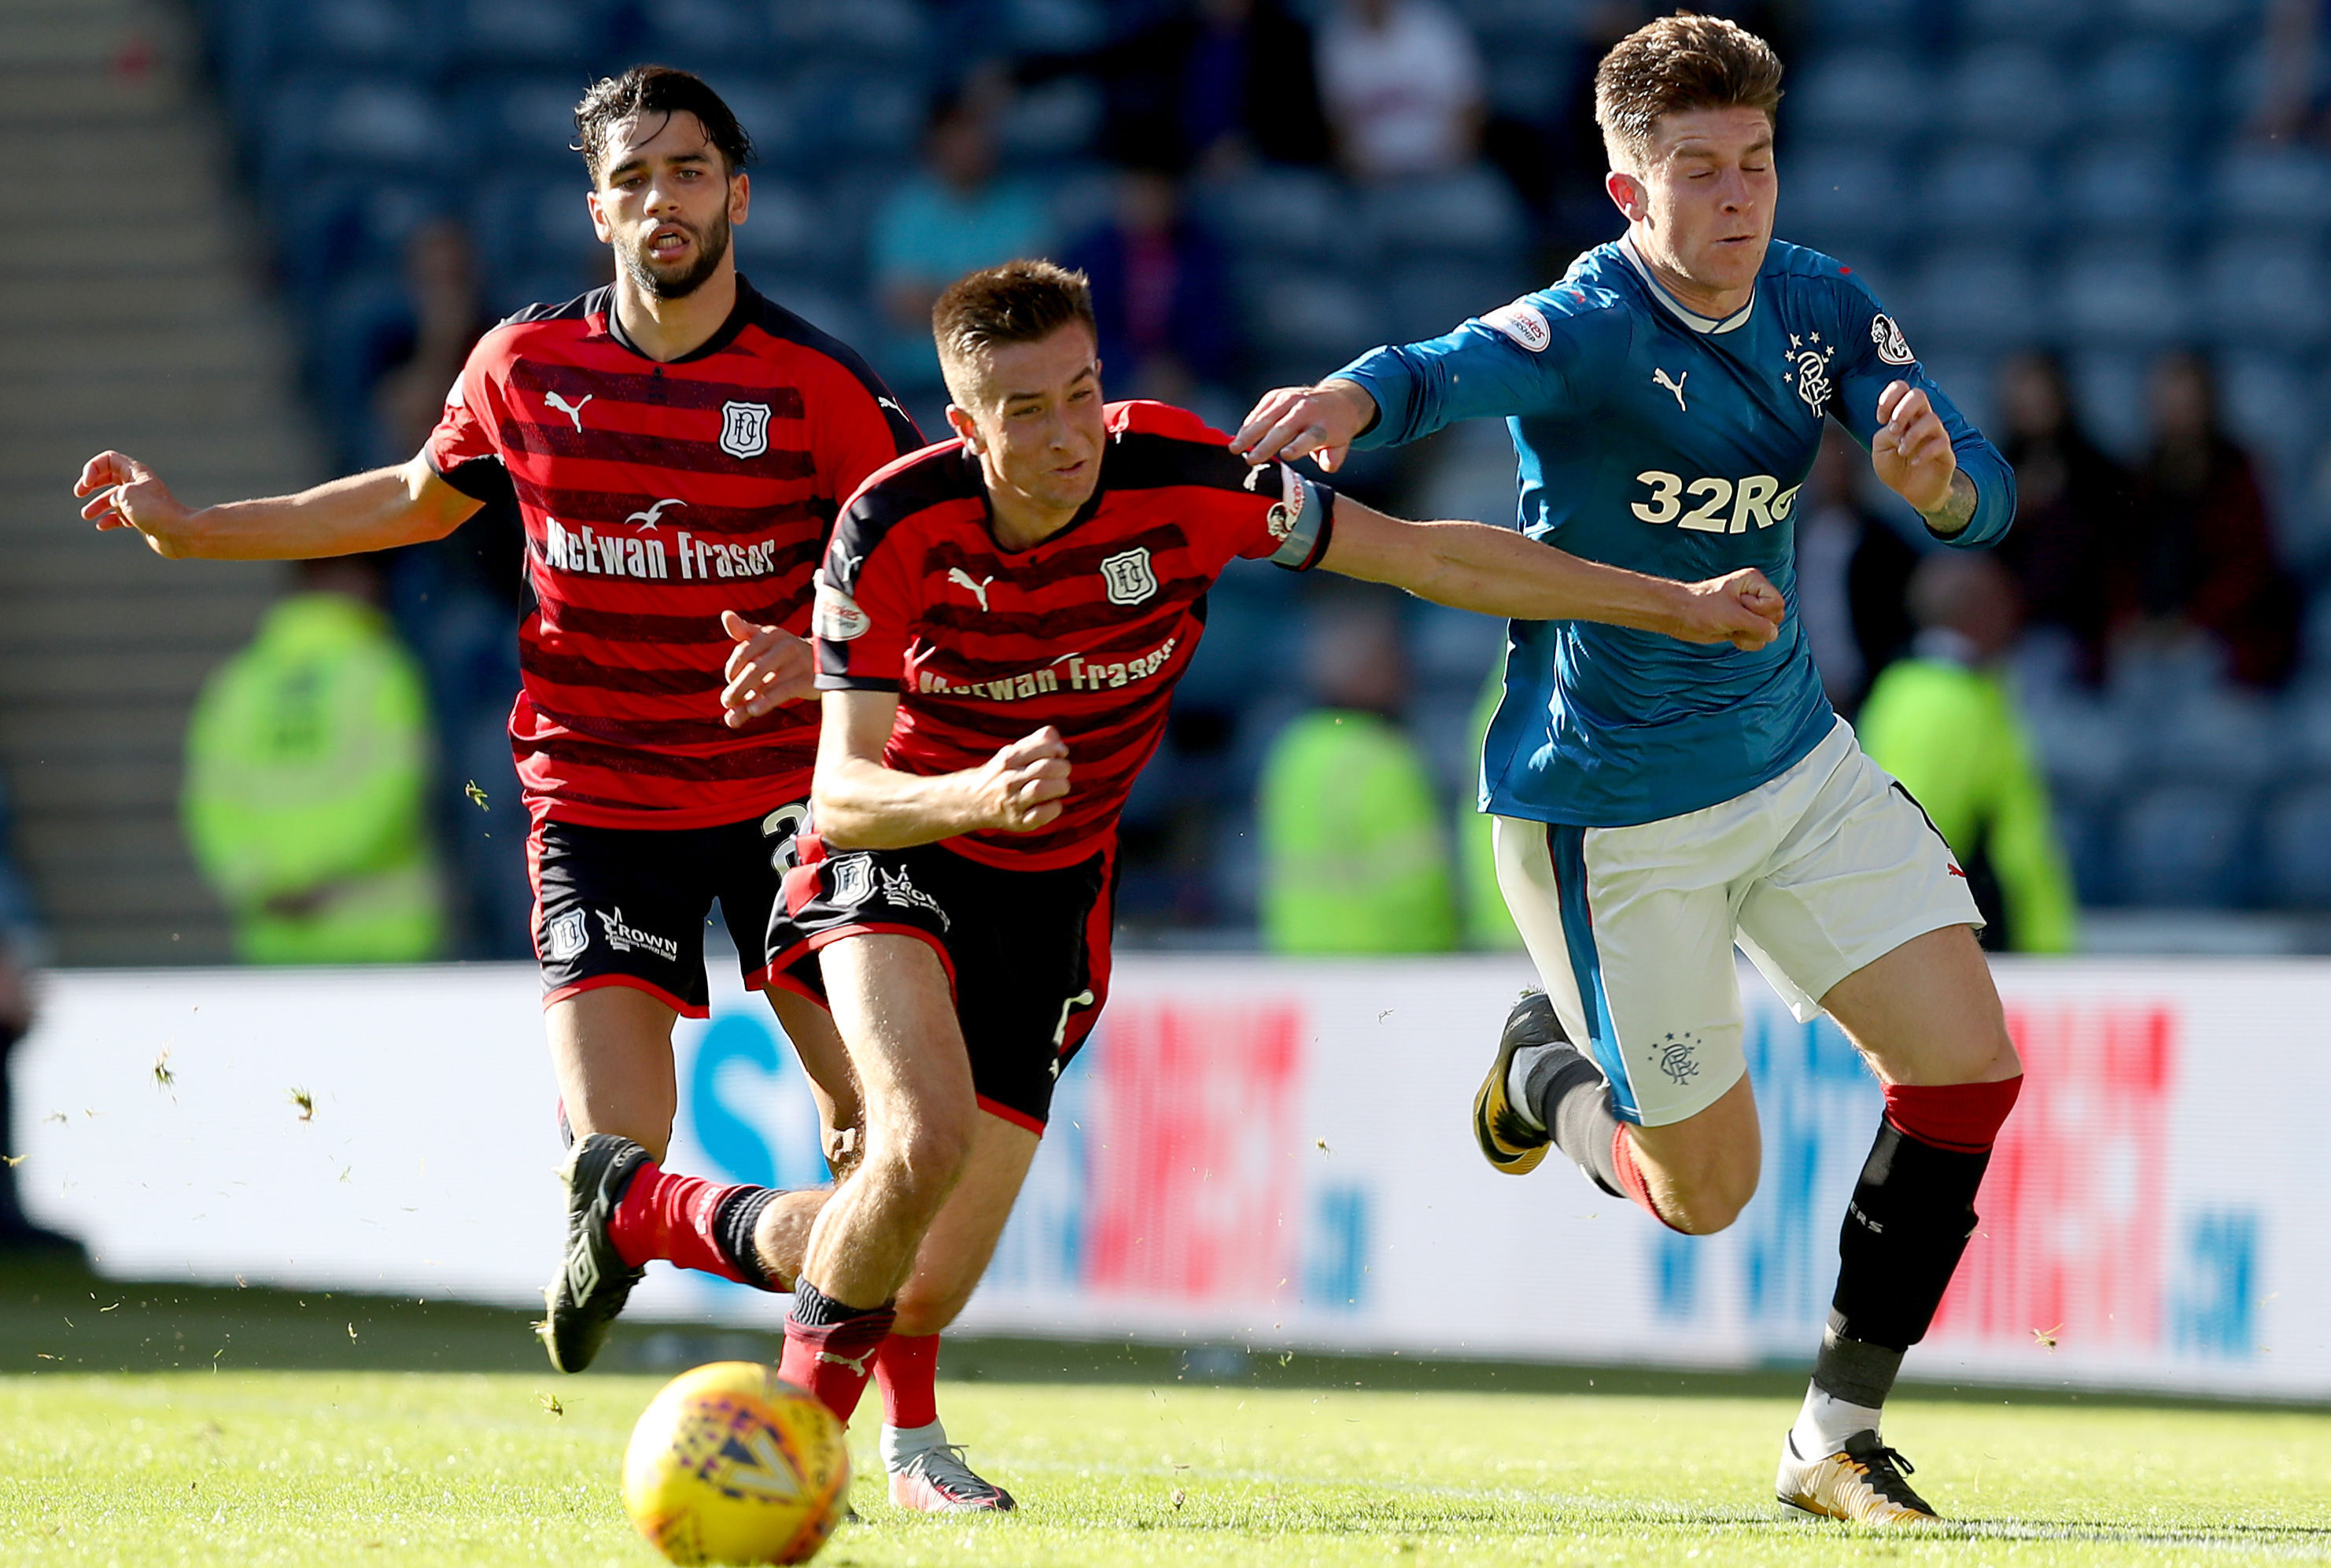 Rangers' Josh Windass and Dundee's Cammy Kerr battle for the ball during the Ladbrokes Scottish Premiership match at Ibrox